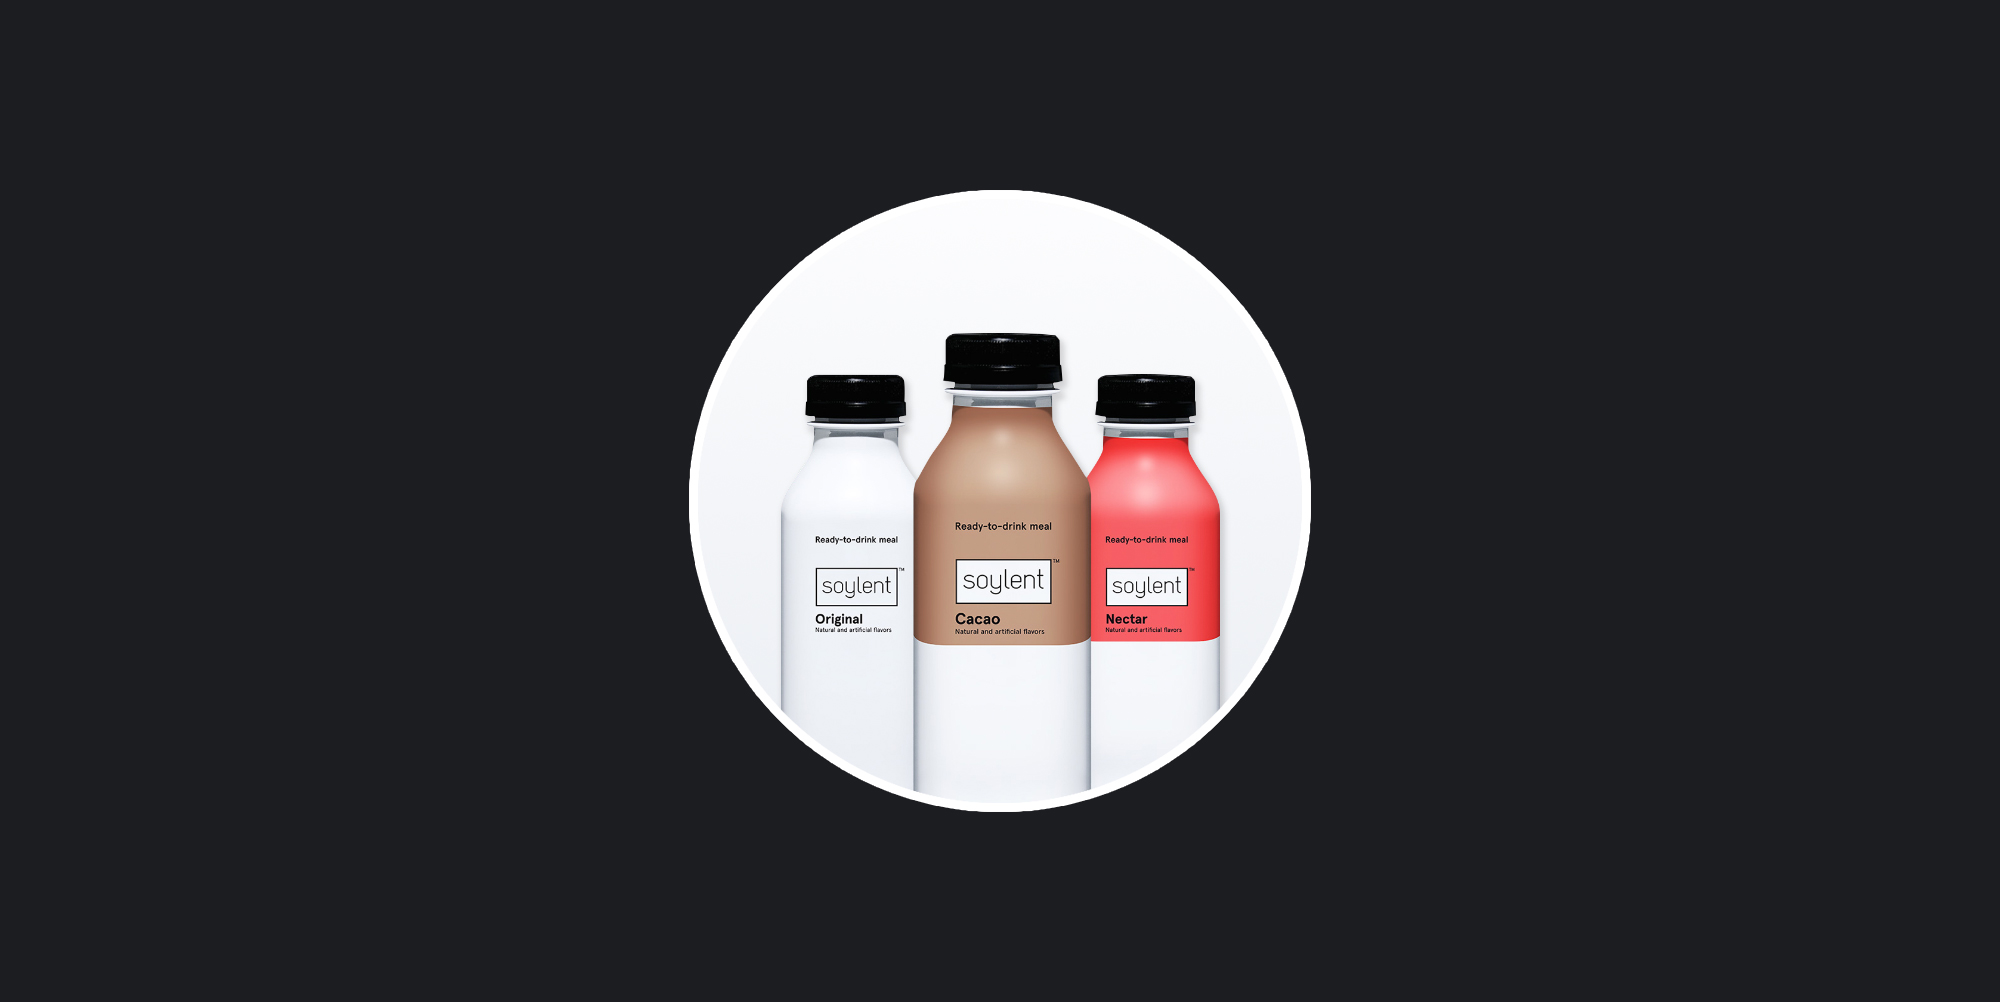 Soylent: Making lasting improvements